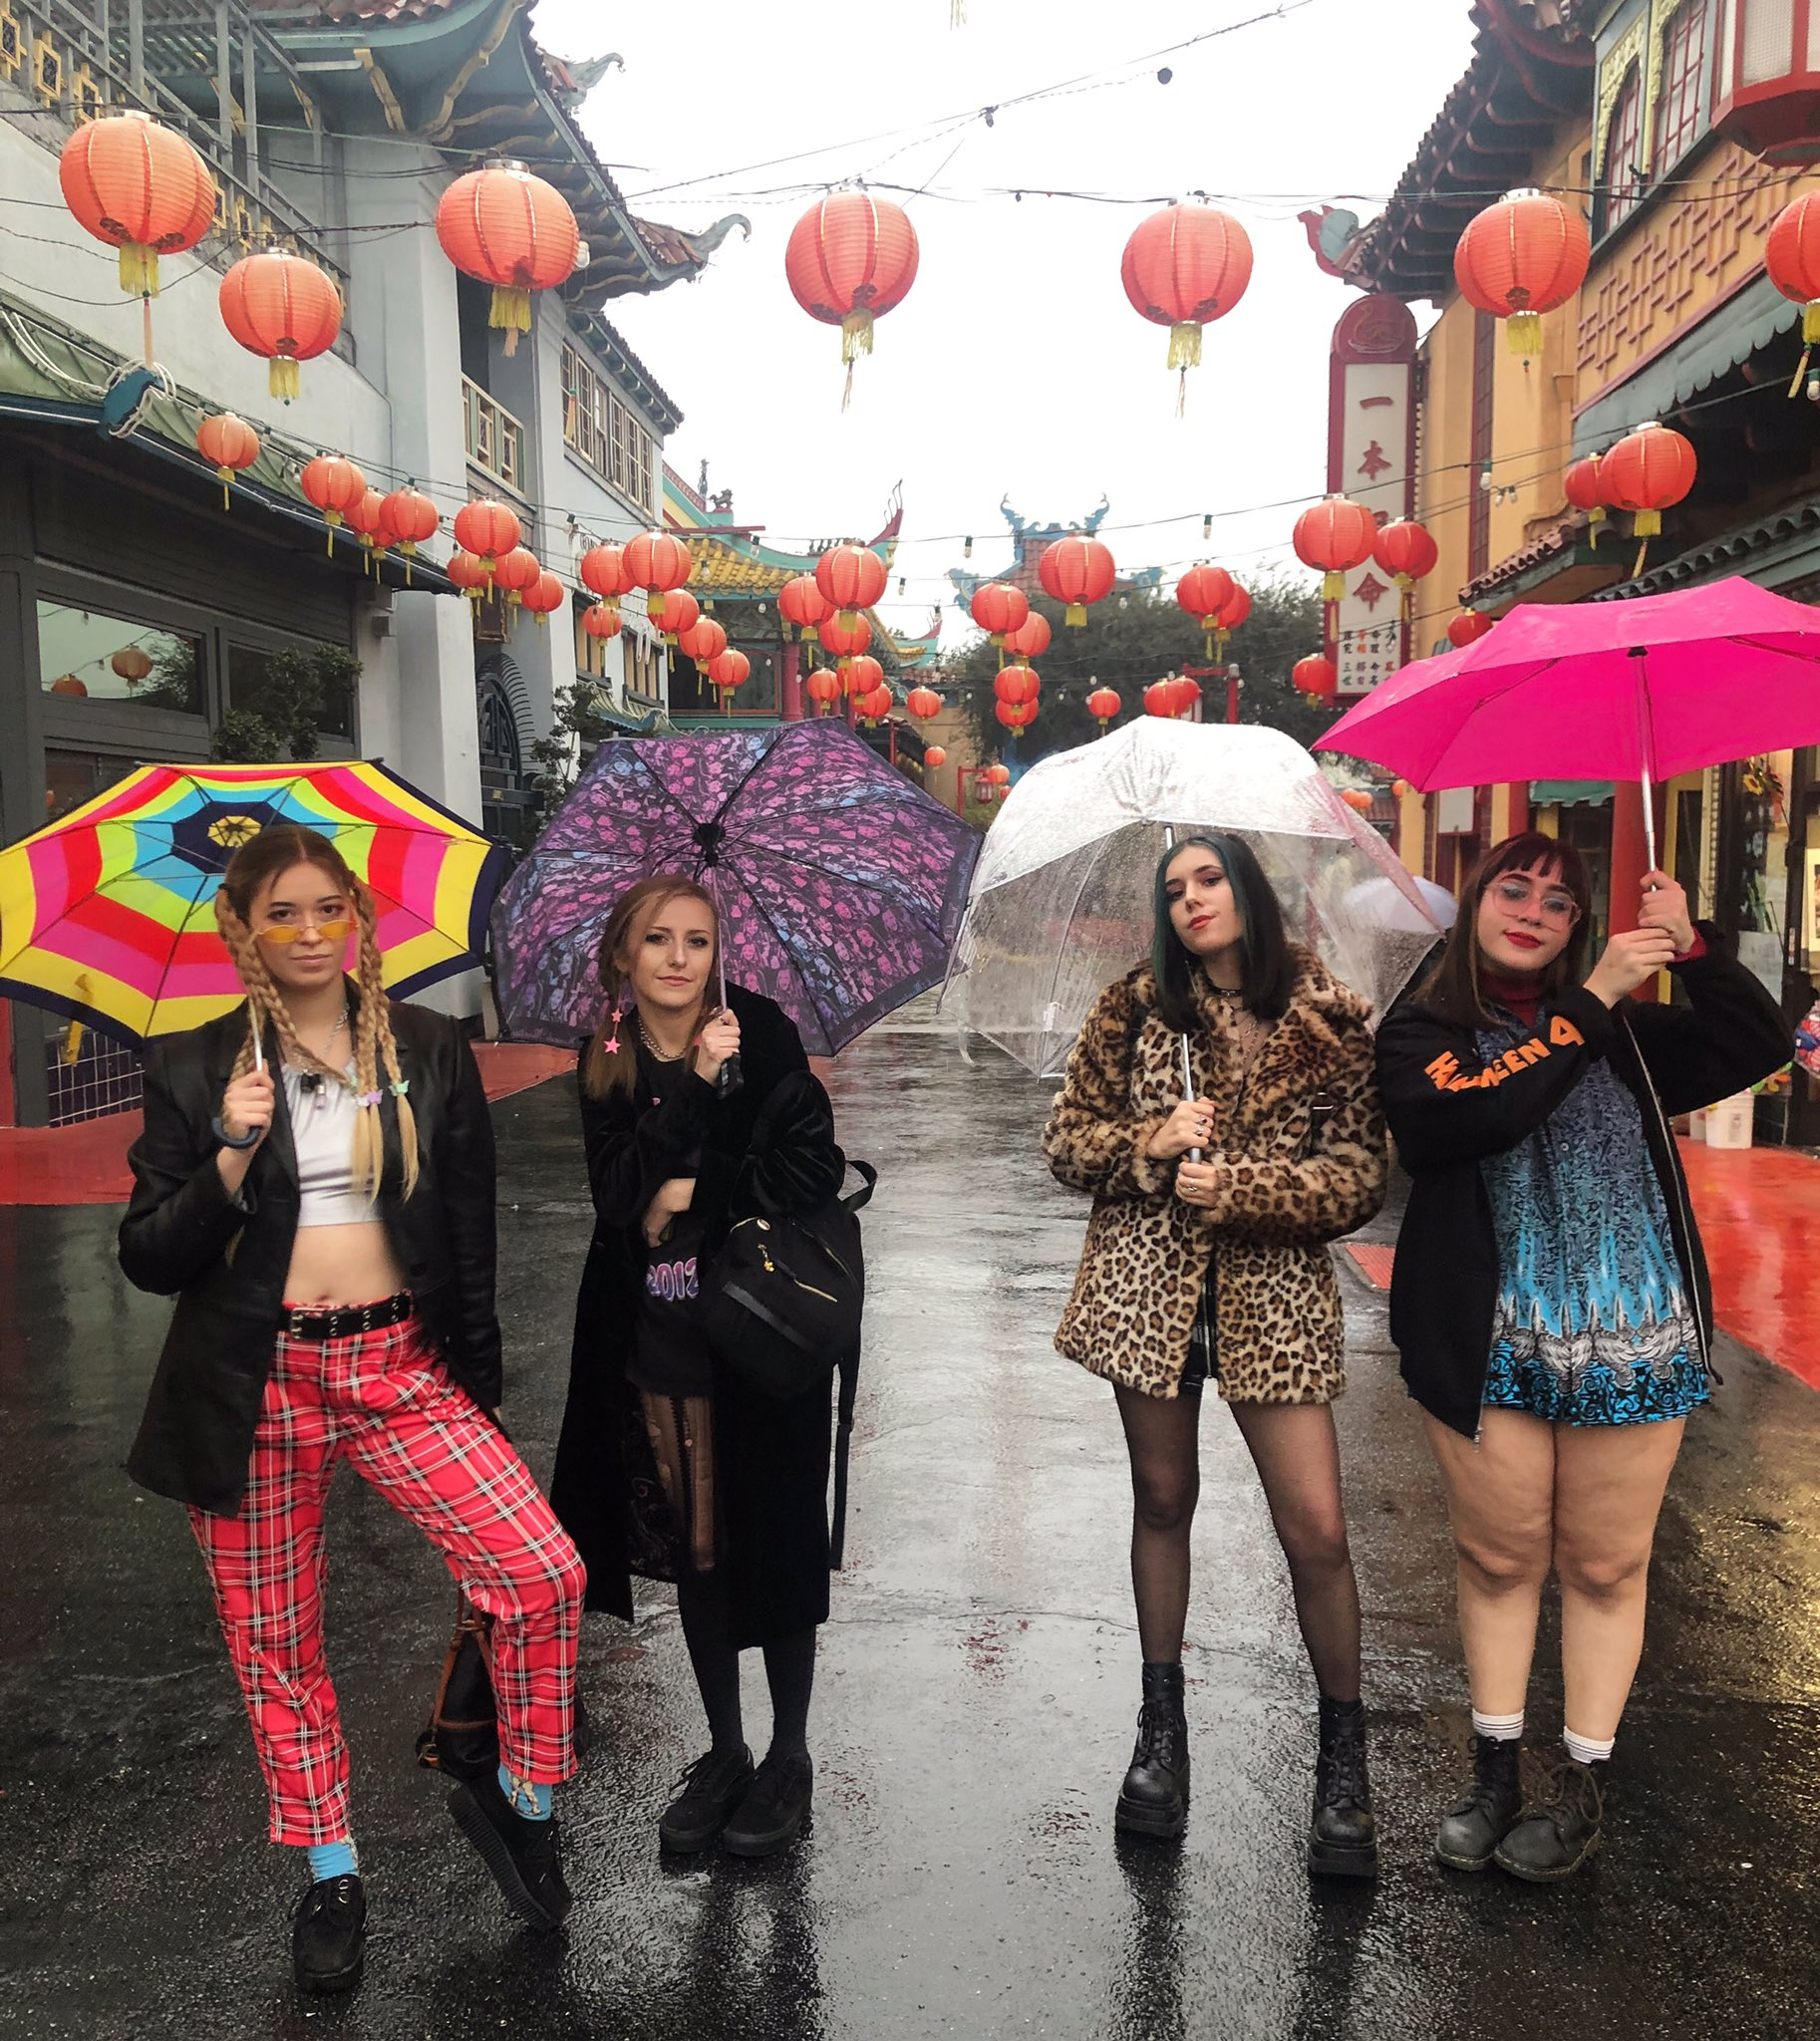 Press photos taken by    @jackperkinsphotos    in China Town!